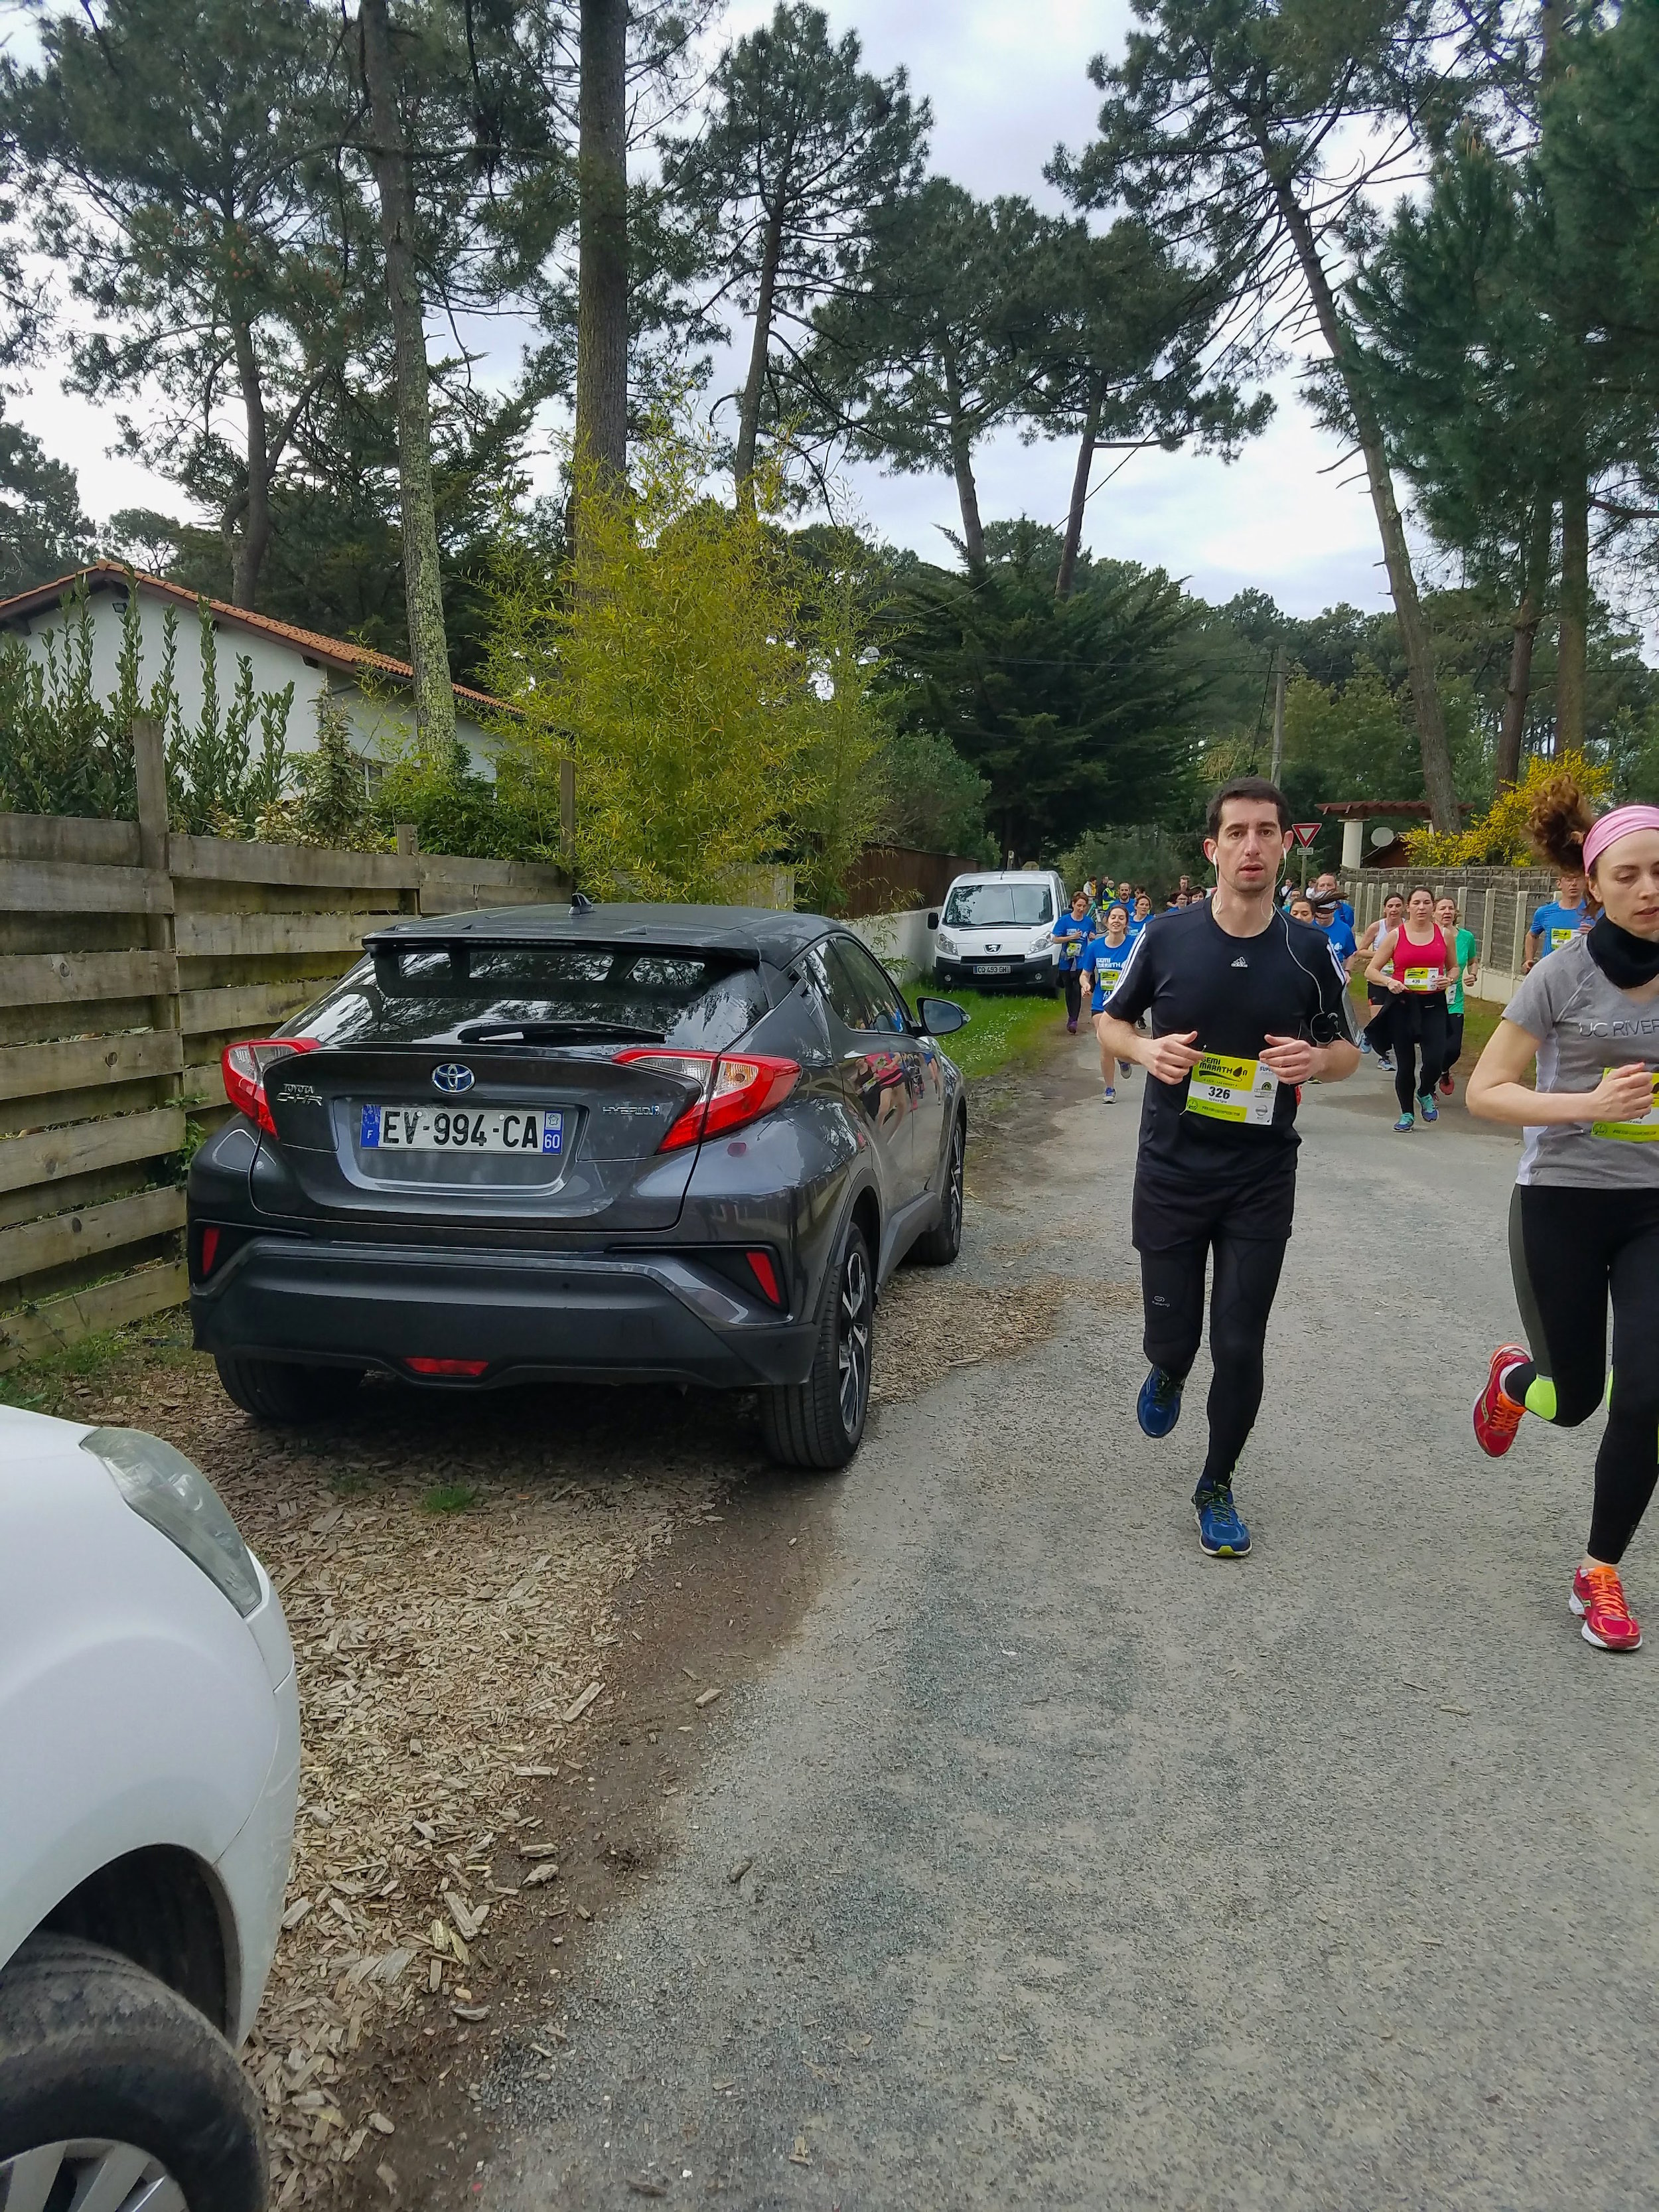 THAT'S OUR CAR. And a confused runner wondering why were so excited at kilometer .5.